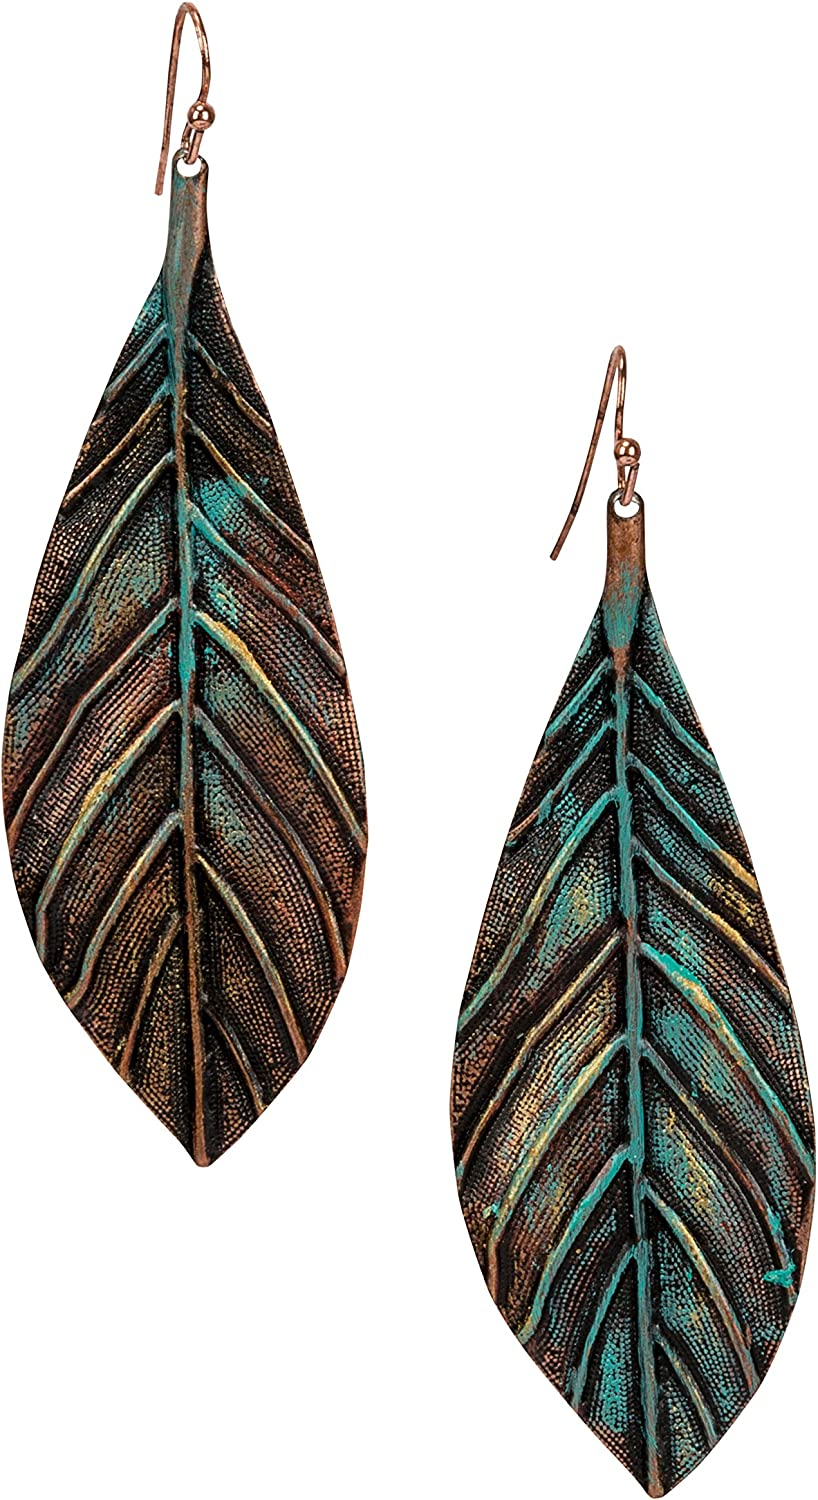 Handmade Boho Lightweight Statement Leaf Earrings with Detailed Texture for Women